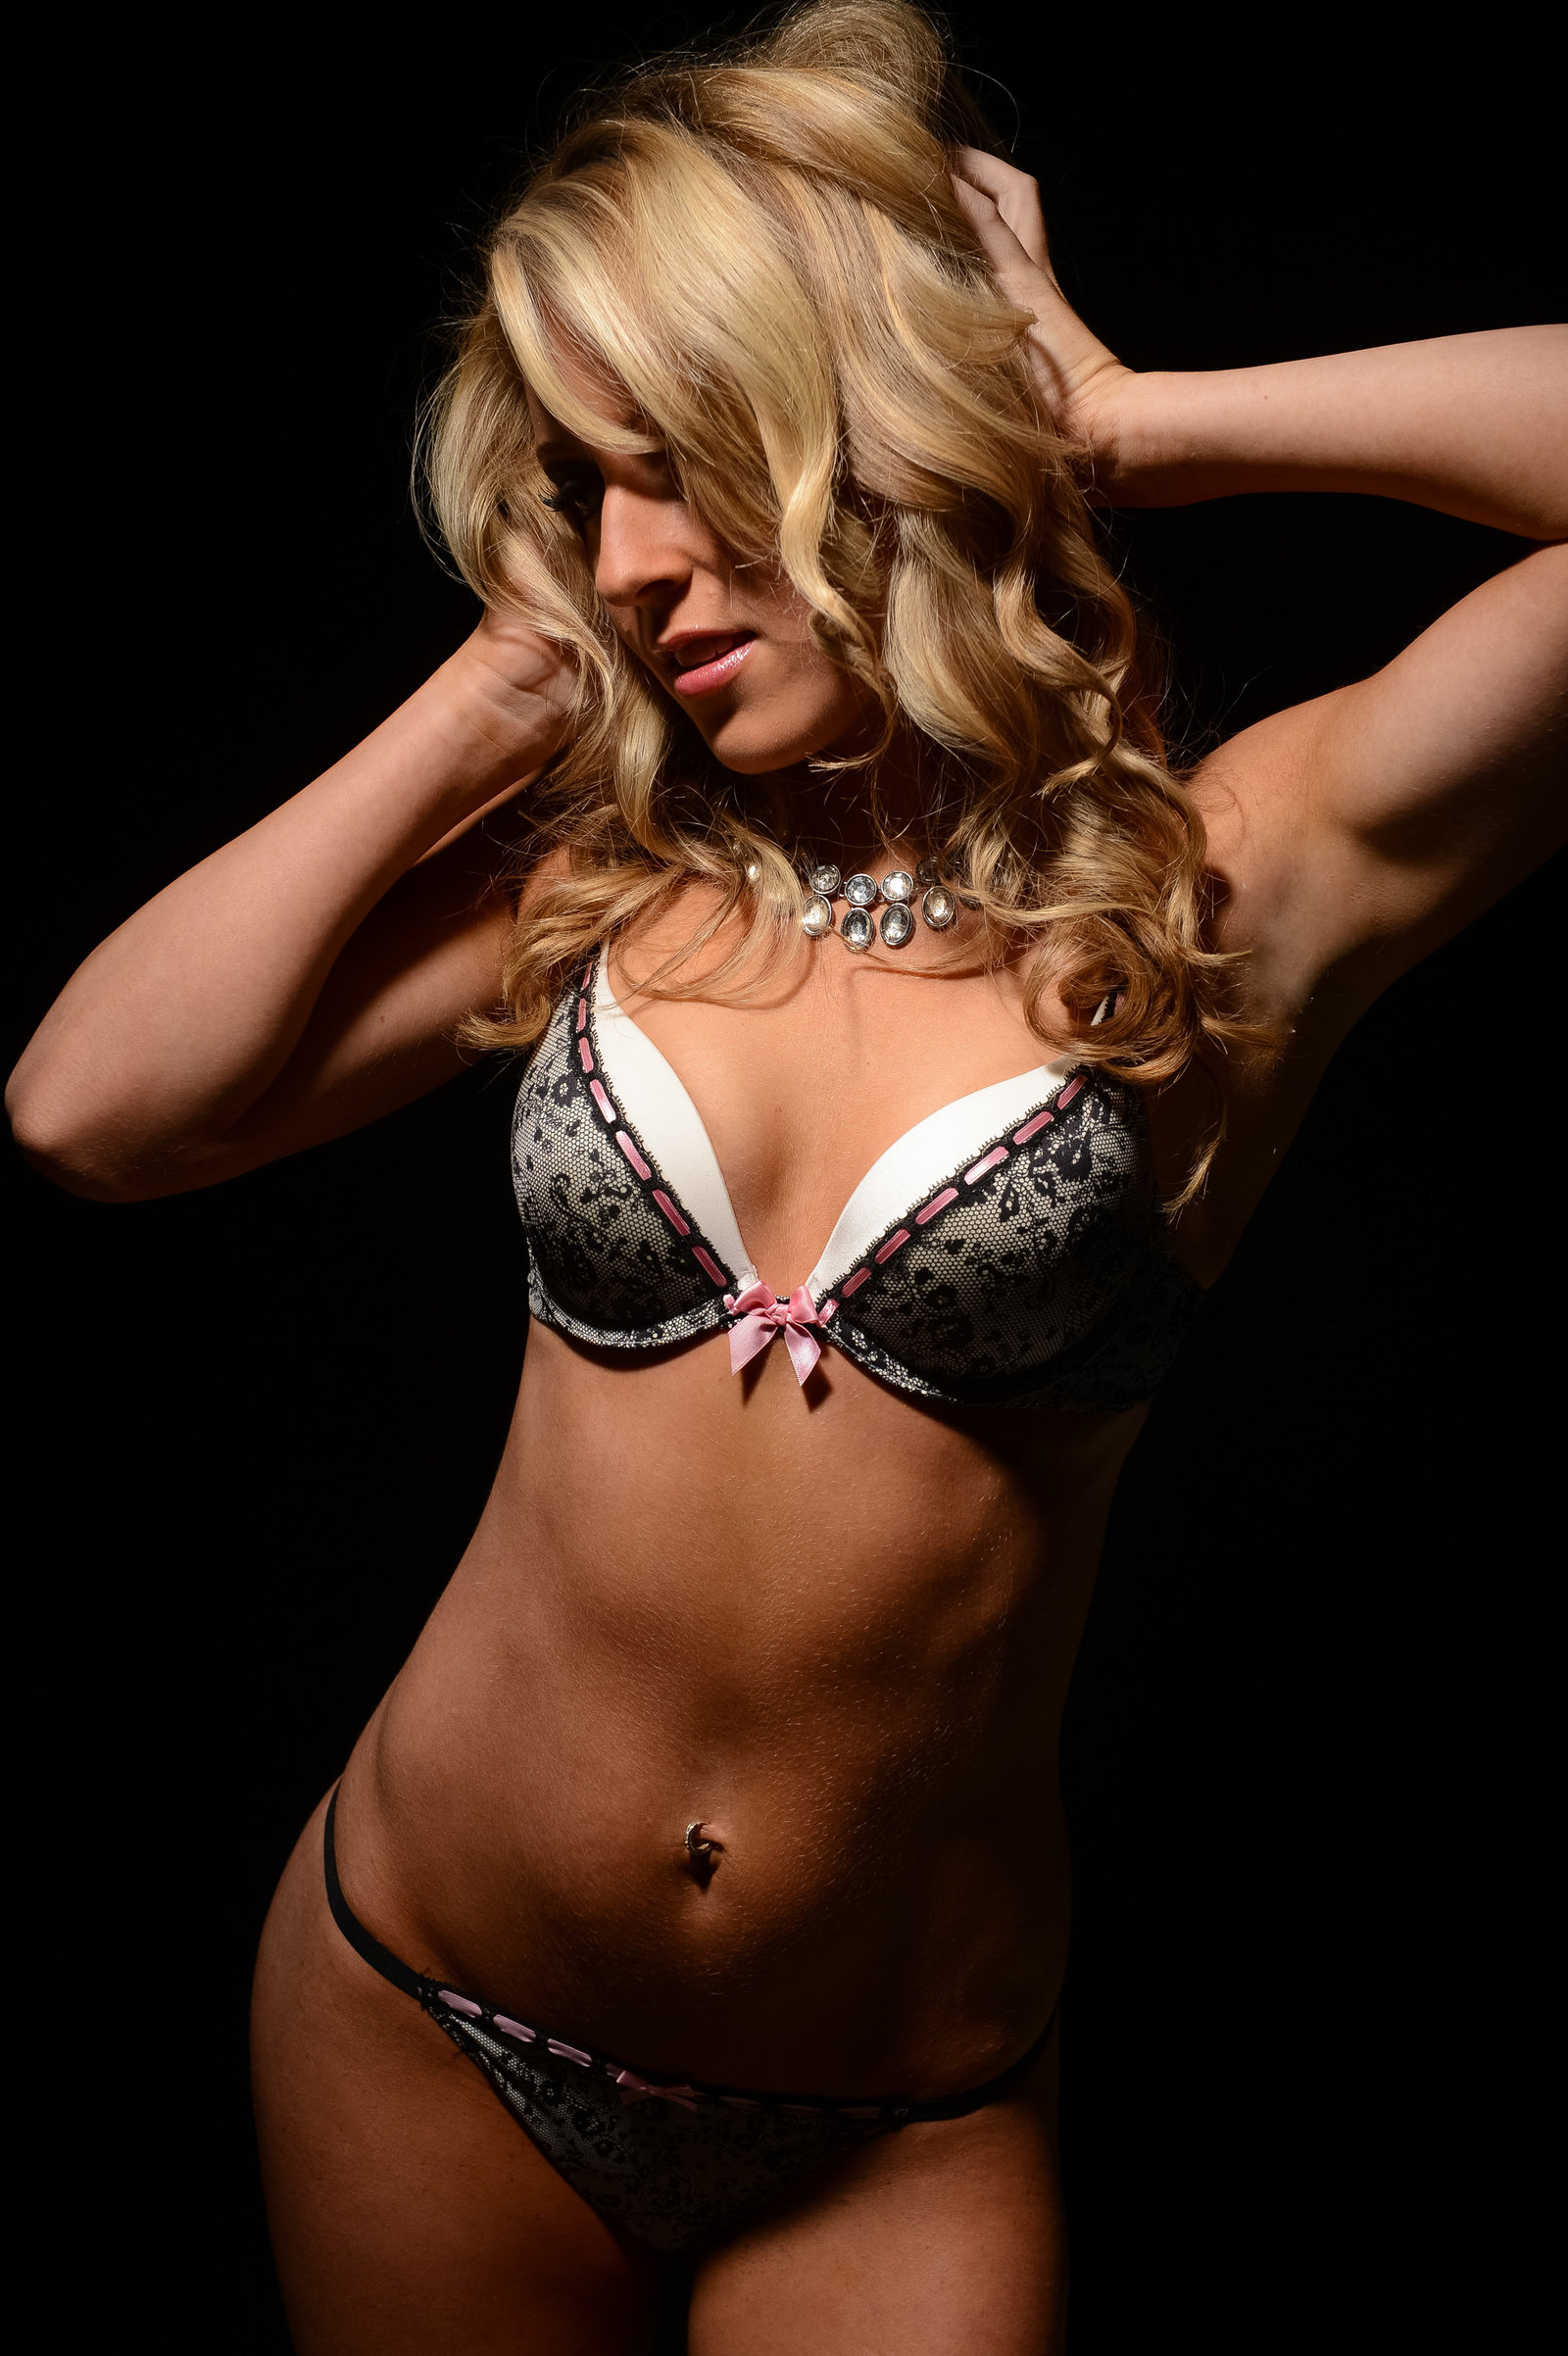 Boudoir Louisville - Boudoir Photography Studio - Lexington, Cincinnati & Indianapolis-258